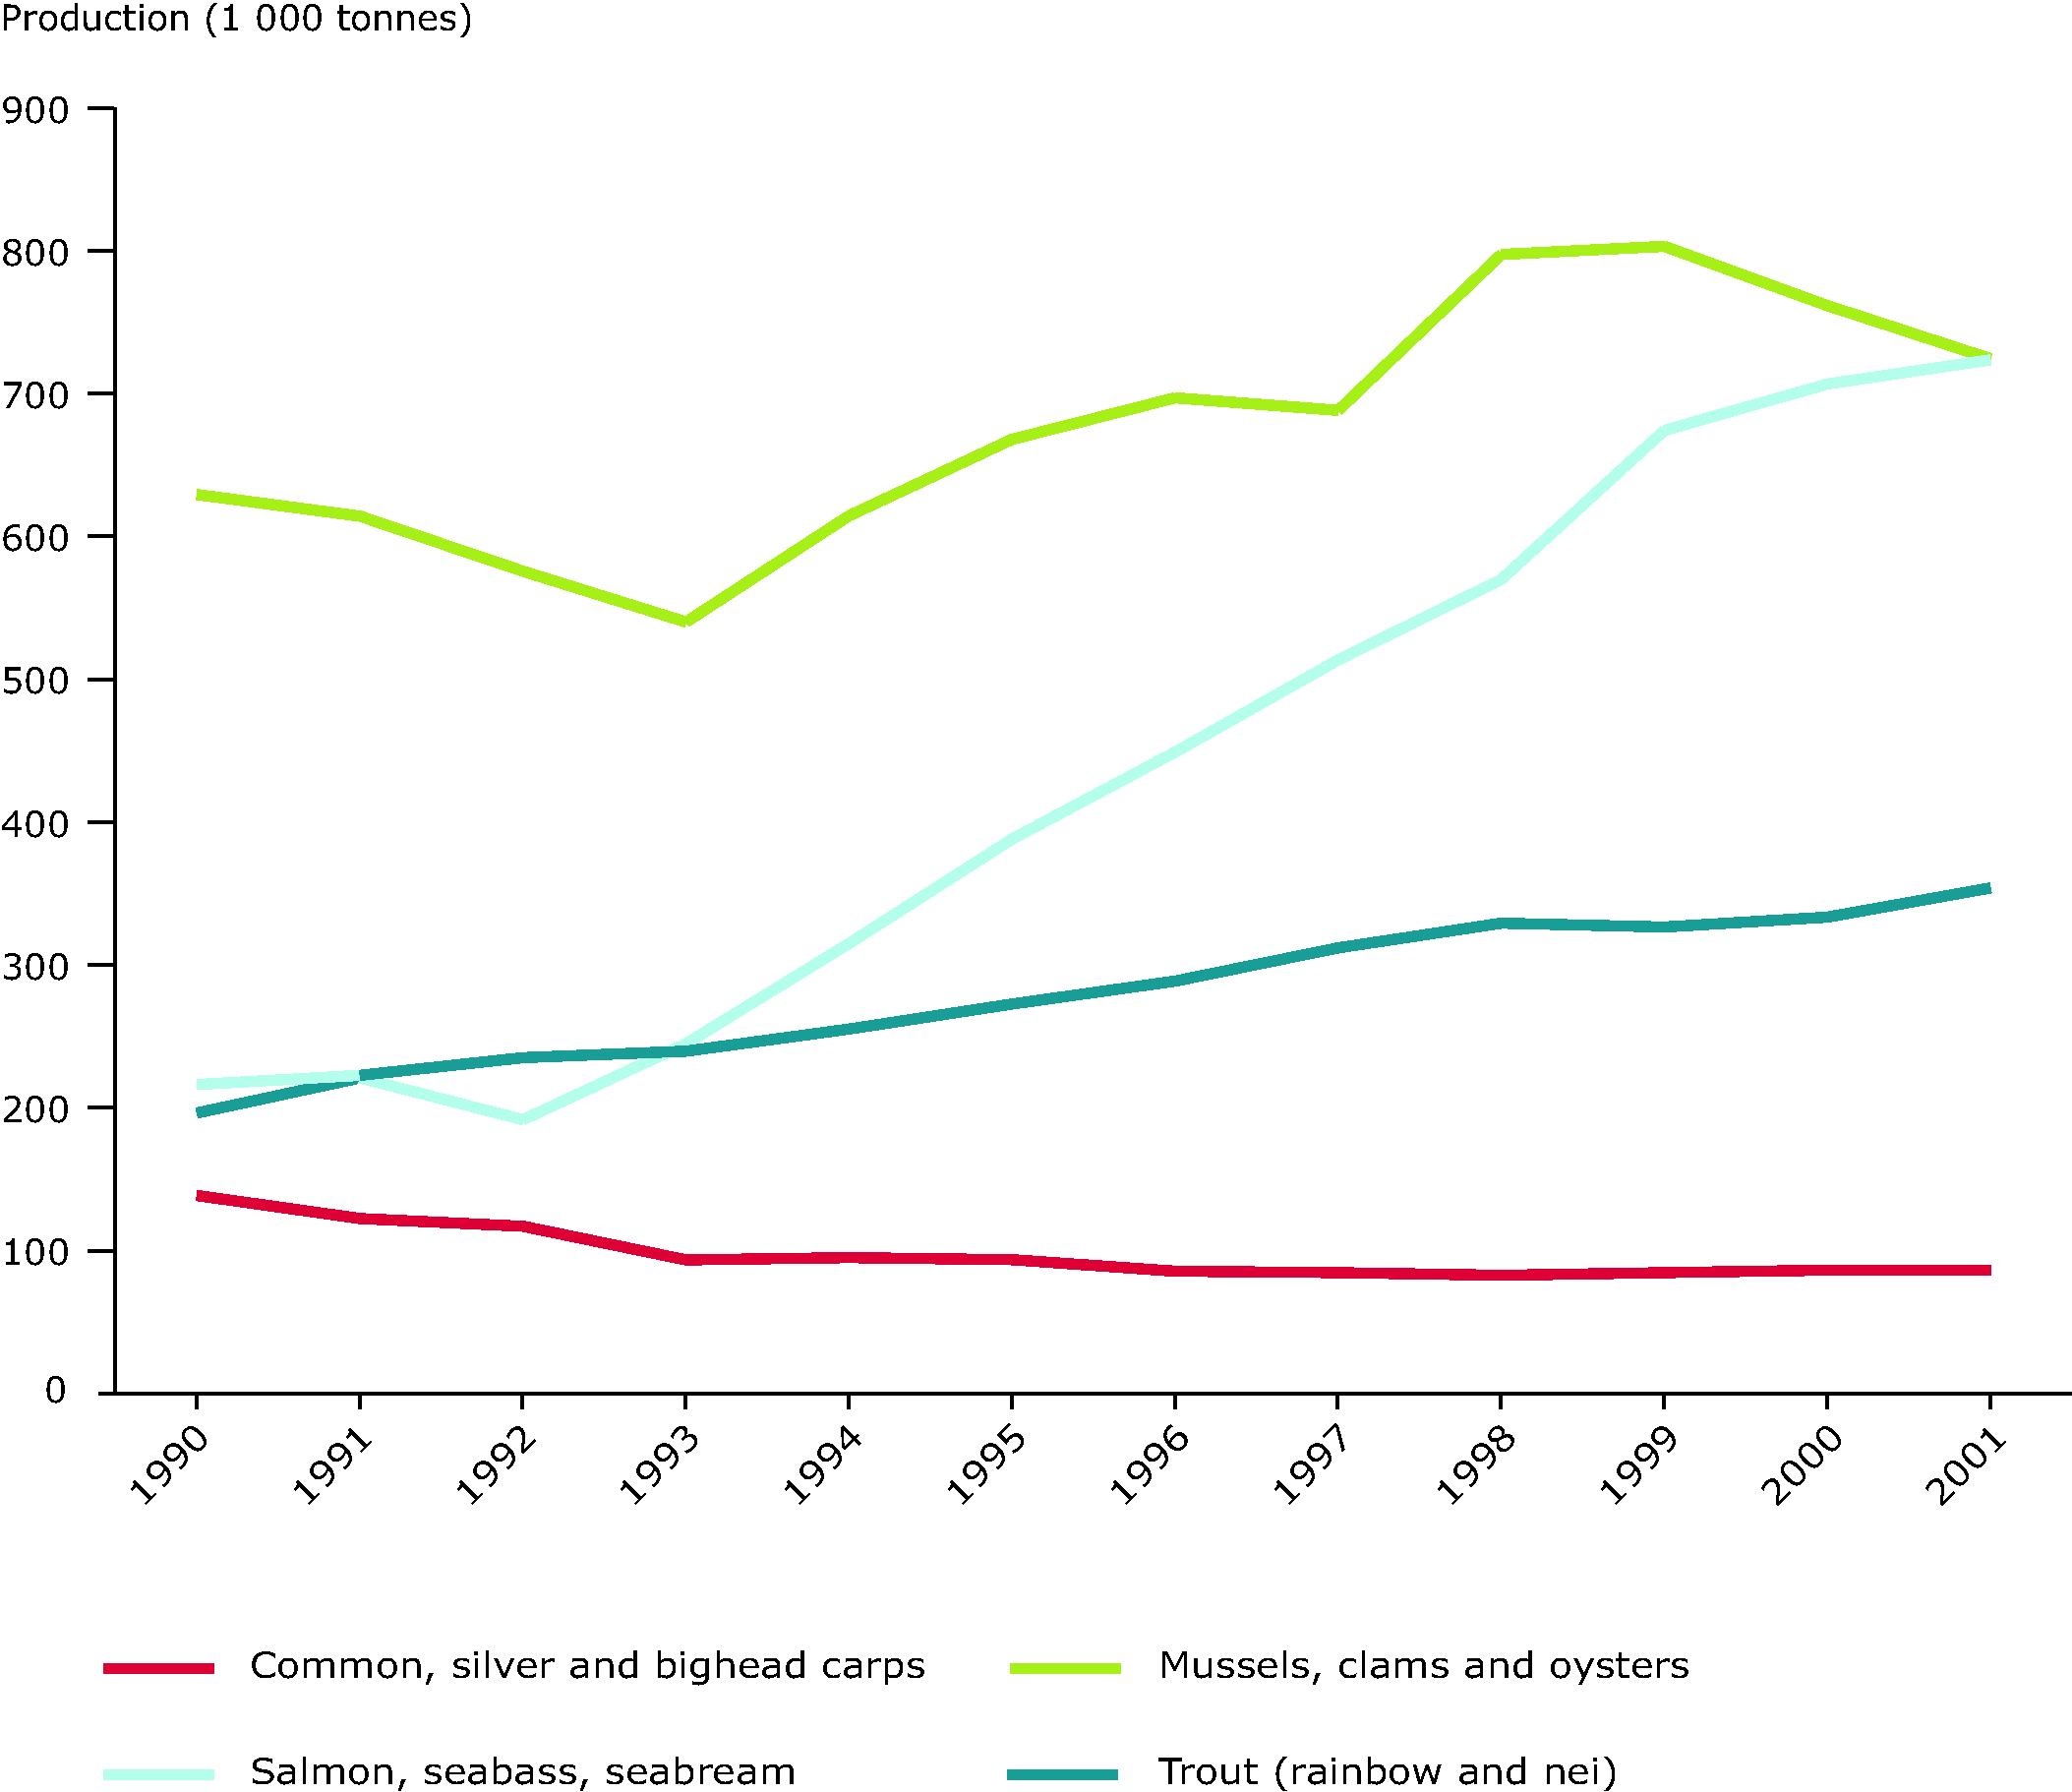 Annual production of major commercial aquaculture species groups, 1990-2001